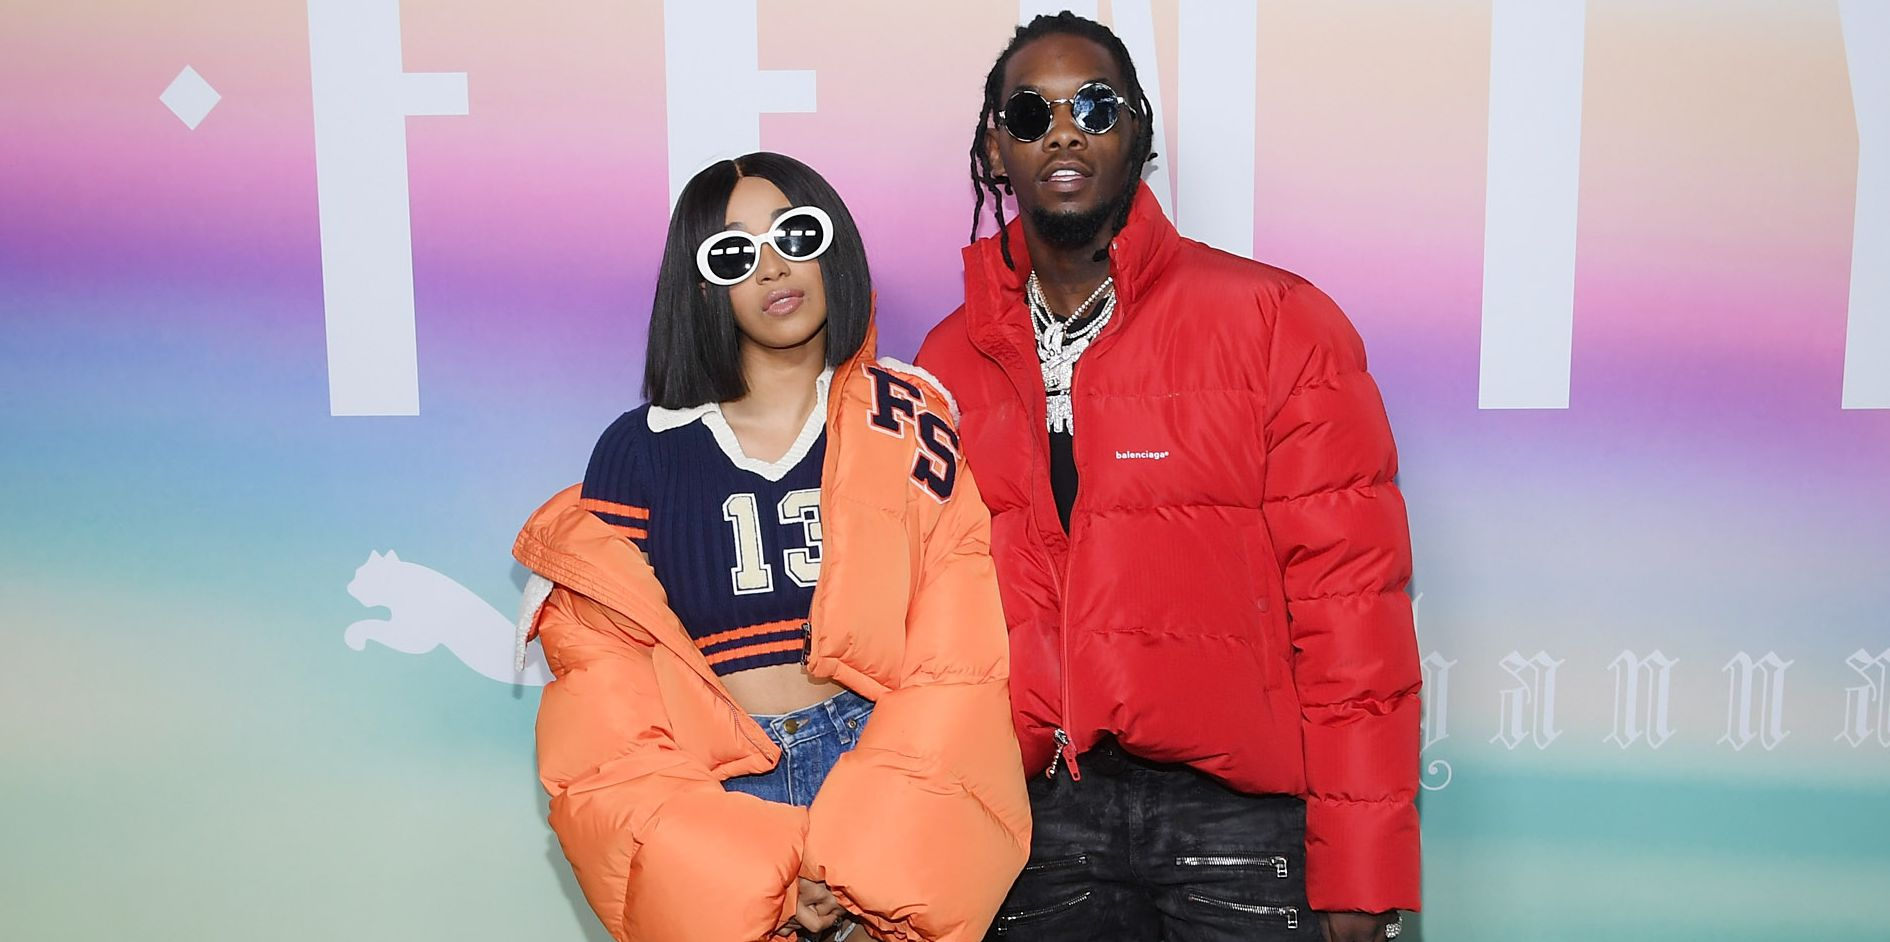 Cardi B Reveals She and Offset Have Broken Up in Shocking Statement